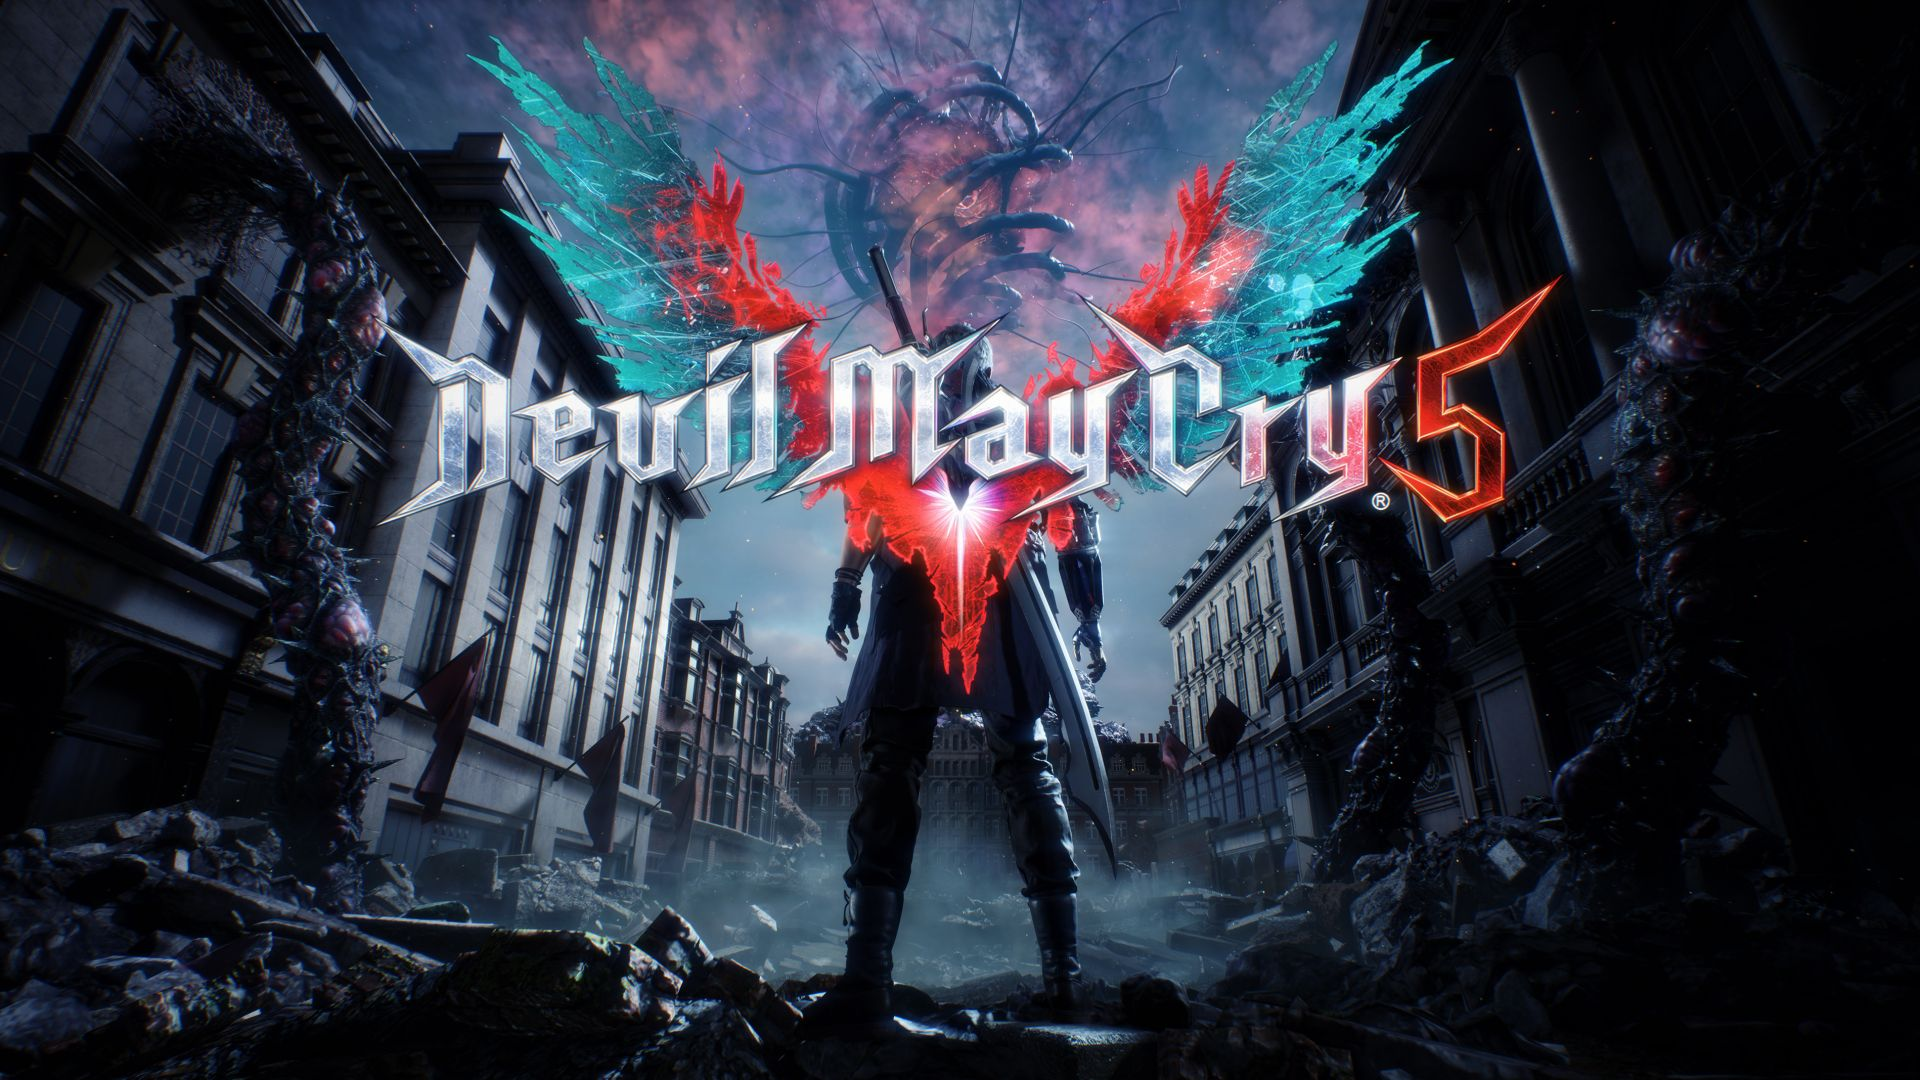 Wallpaper Devil May Cry 5, E3 2018, Poster, 4K, Games #18989